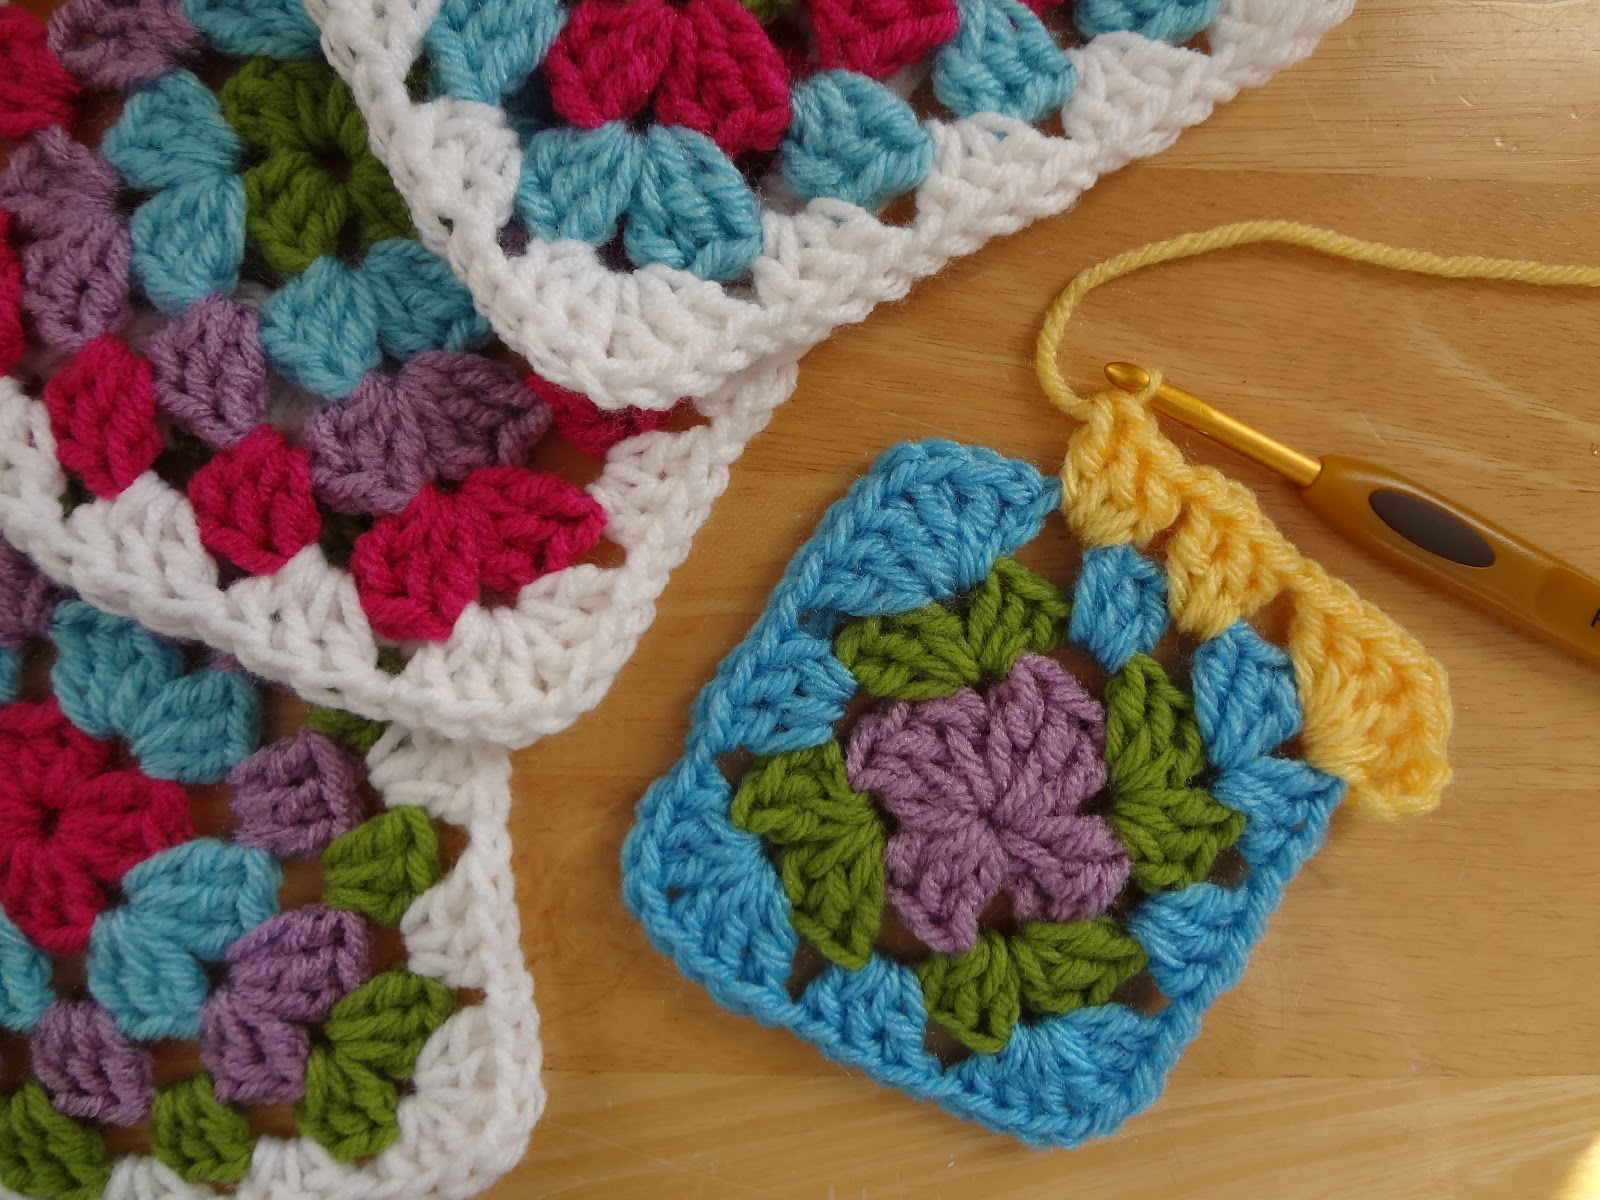 Crochet Granny Square Dishcloth Pattern : Fiber Flux: Free Crochet Pattern...Granny Berry Dishcloths!